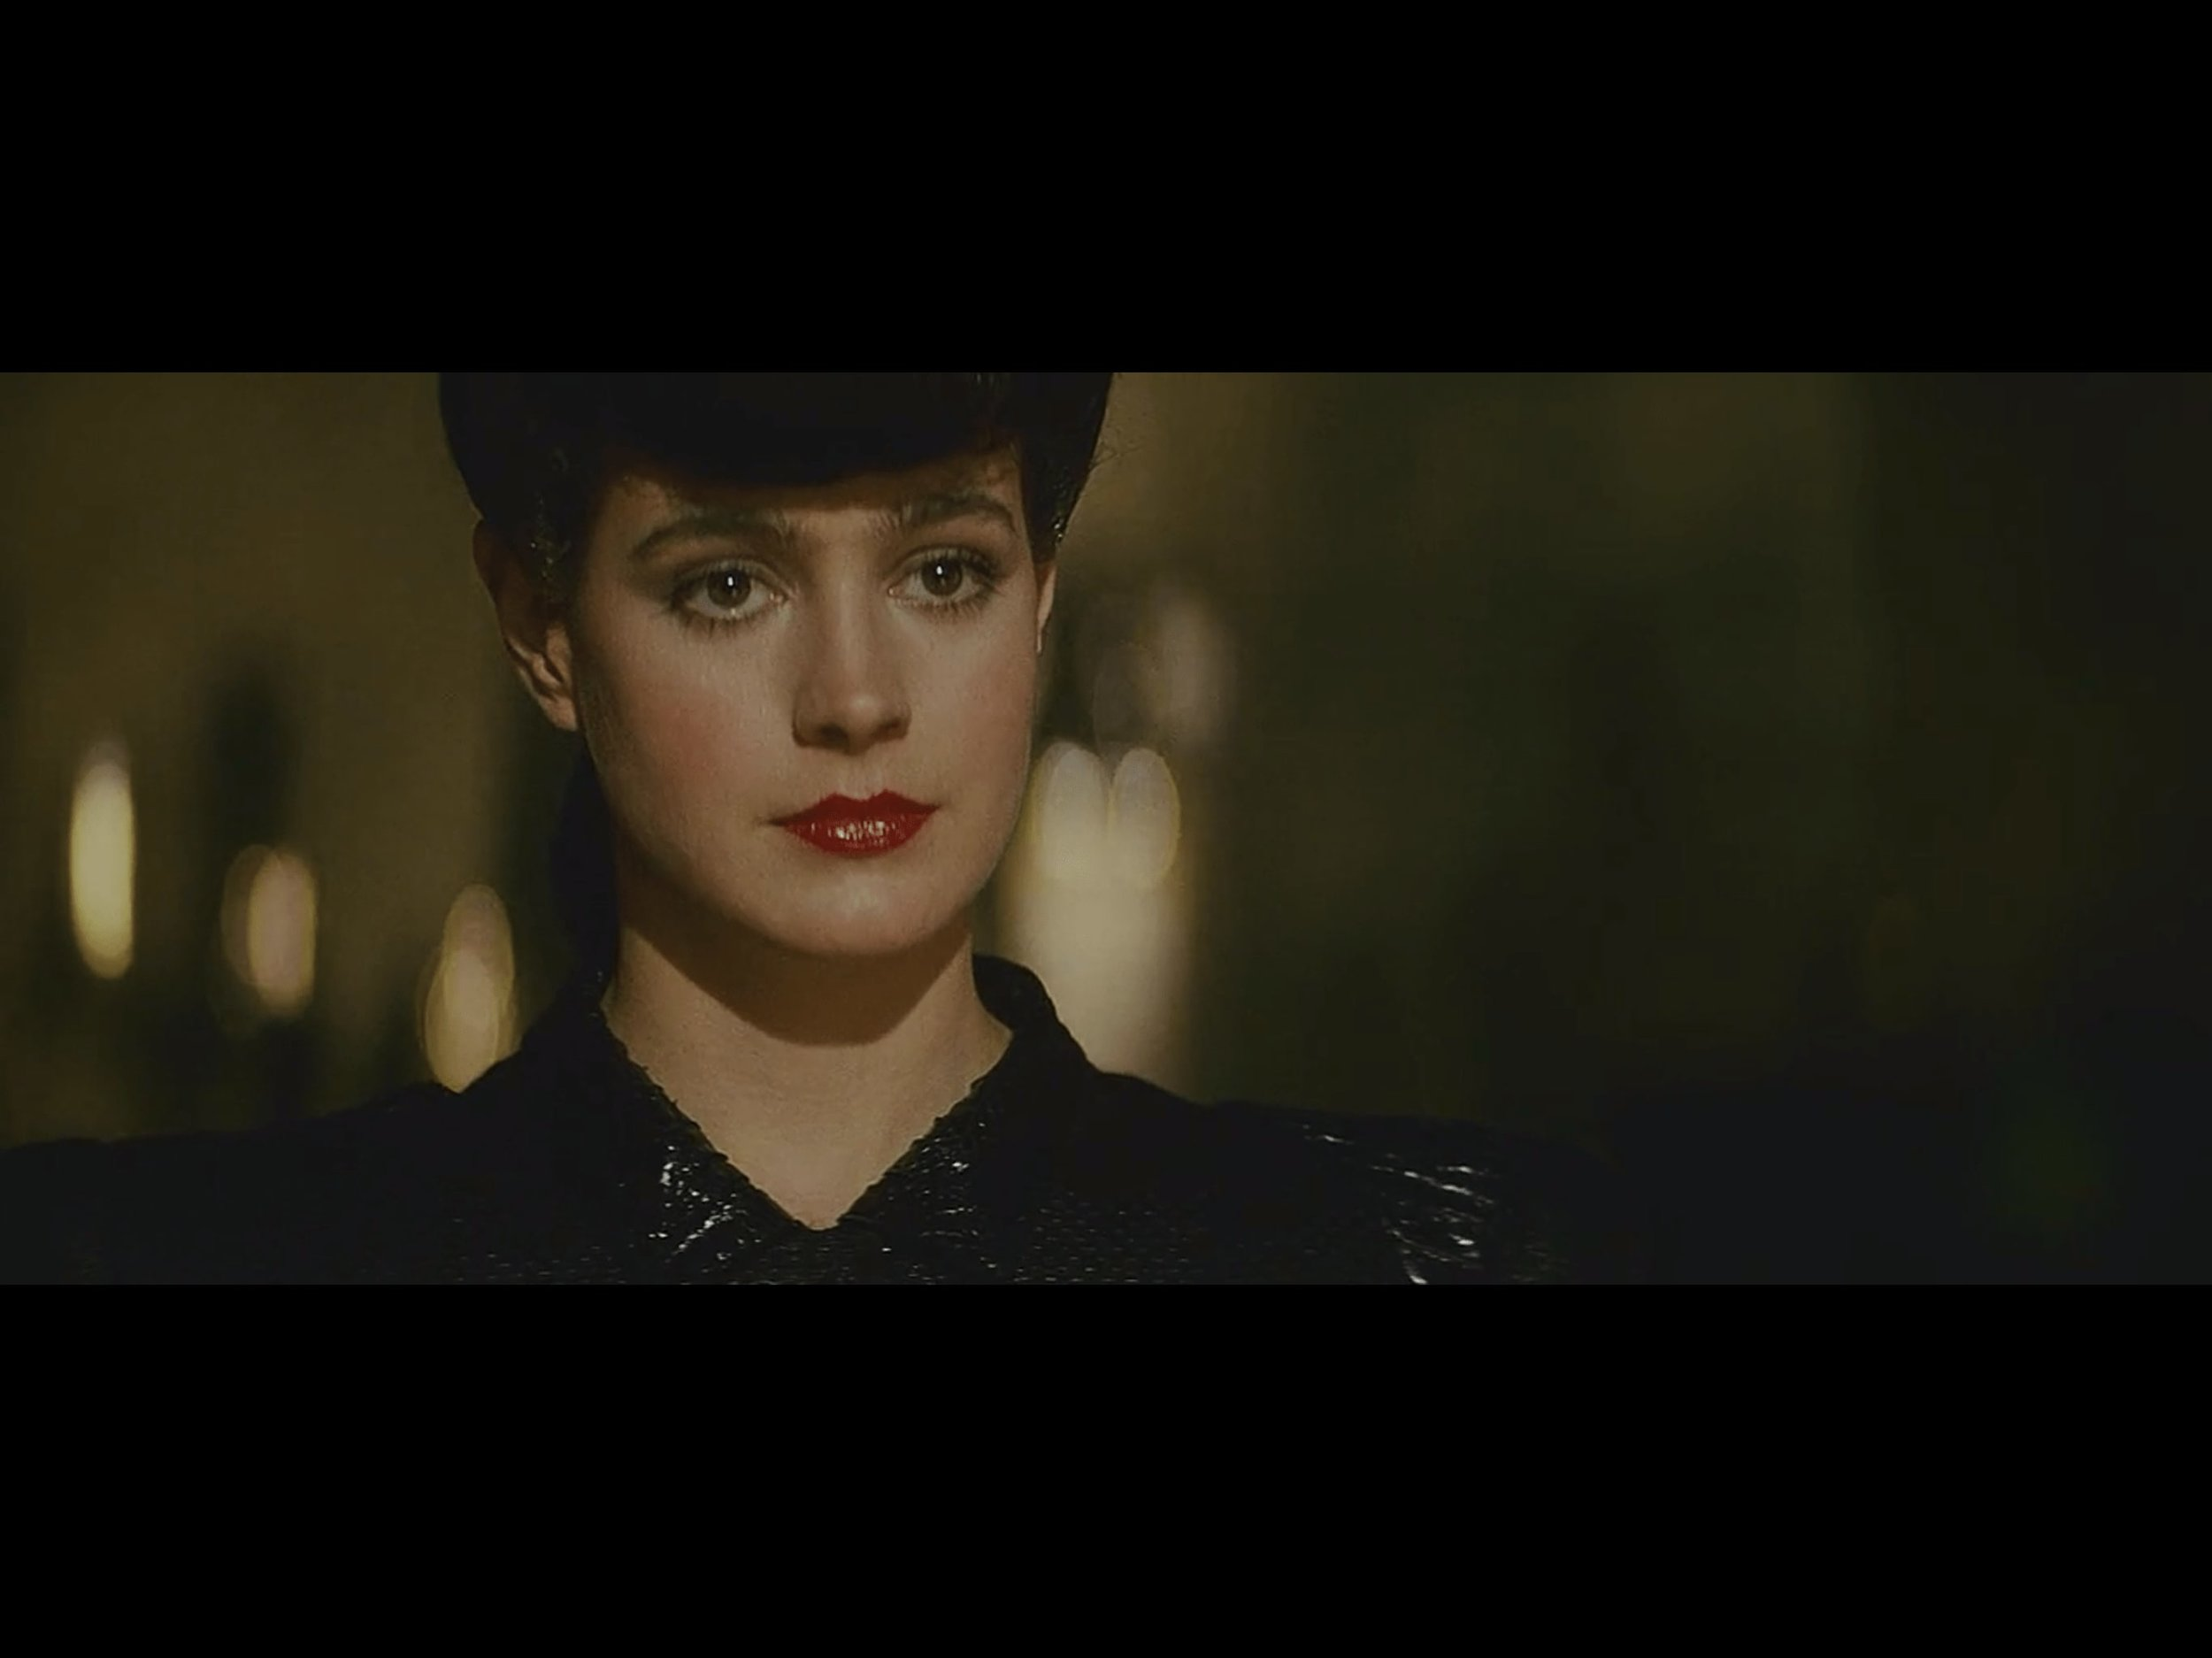 blade-runner-movie-1982-screenshot-14-min.jpg